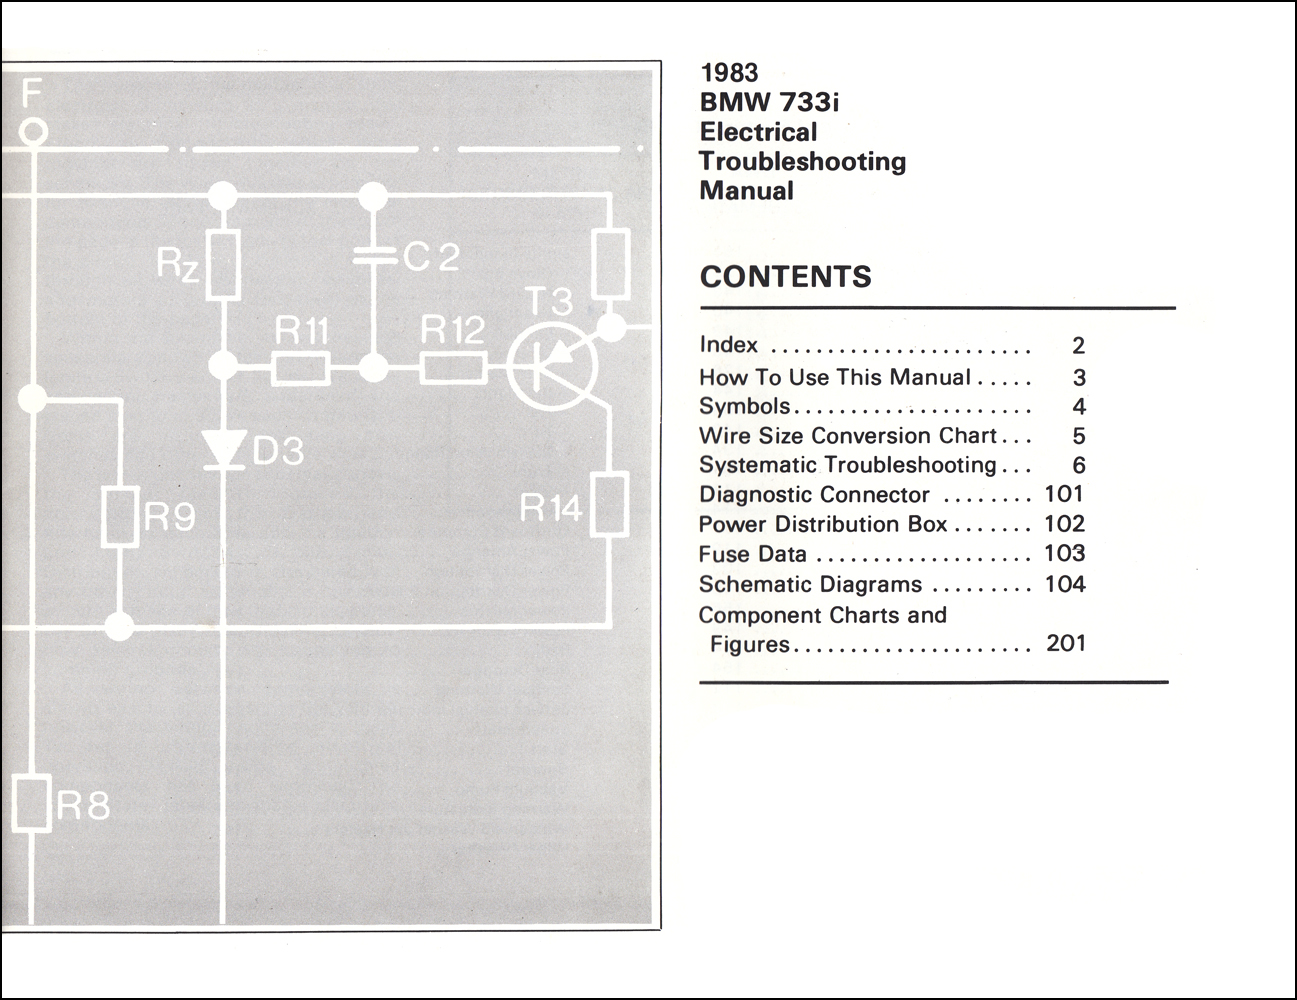 hight resolution of 1983 bmw 733i electrical troubleshooting manual 733 i wiring diagram1983 bmw 733i electrical troubleshooting manual 733